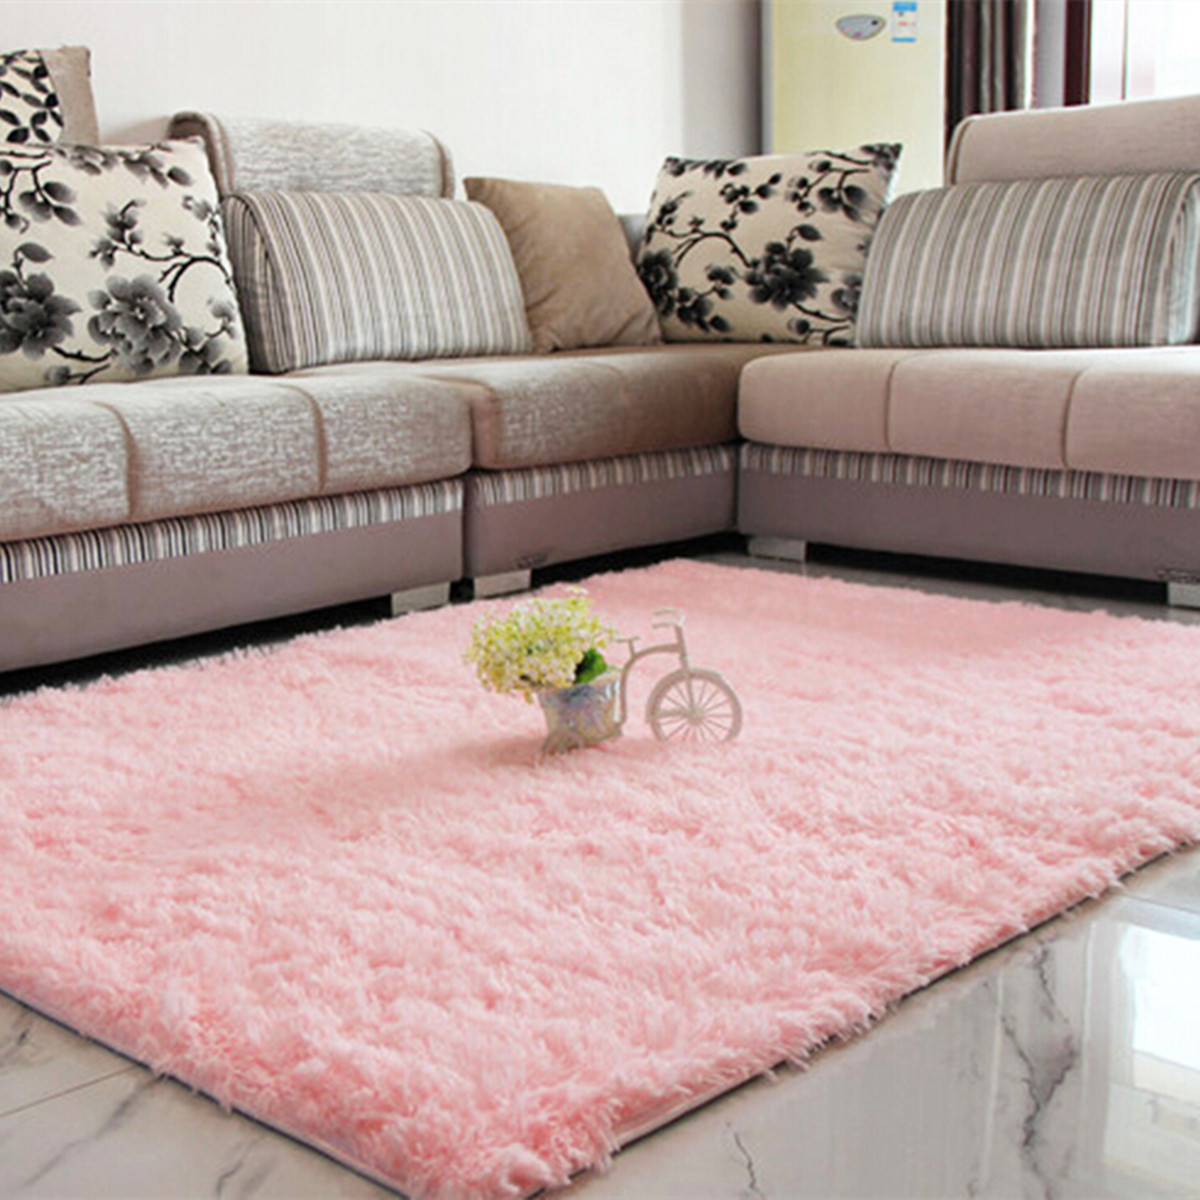 Dining Room Carpet Fluffy Floor Rug Anti Skid Shaggy Area Rug Dining Room Carpet Yoga Bedroom Floor Mat Cover Child Play Mat 48x32inch 80cm X 120cm